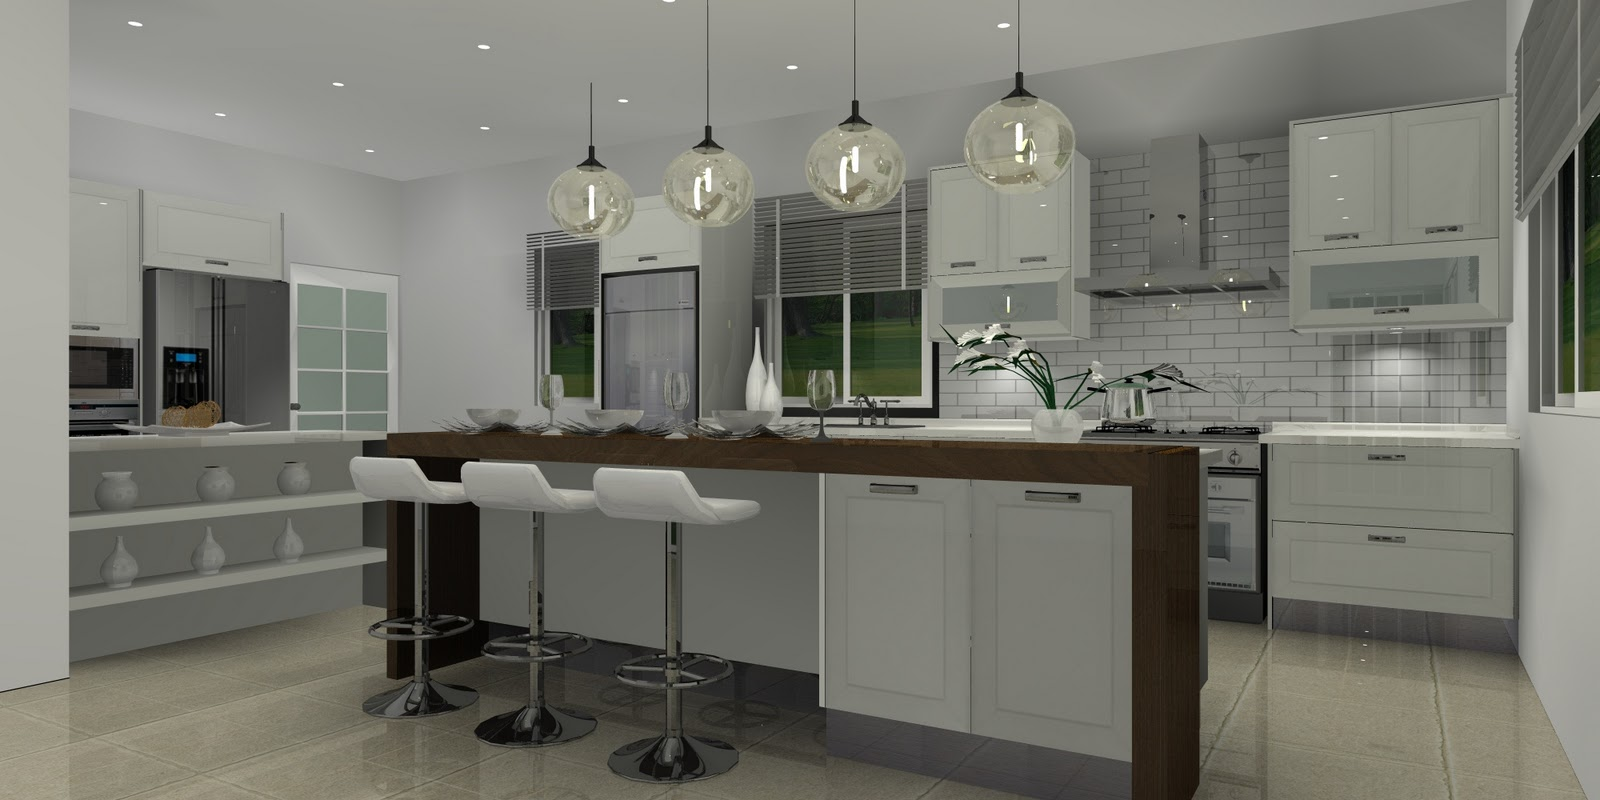 a modern kitchen - Malaysia Interior Design Blog